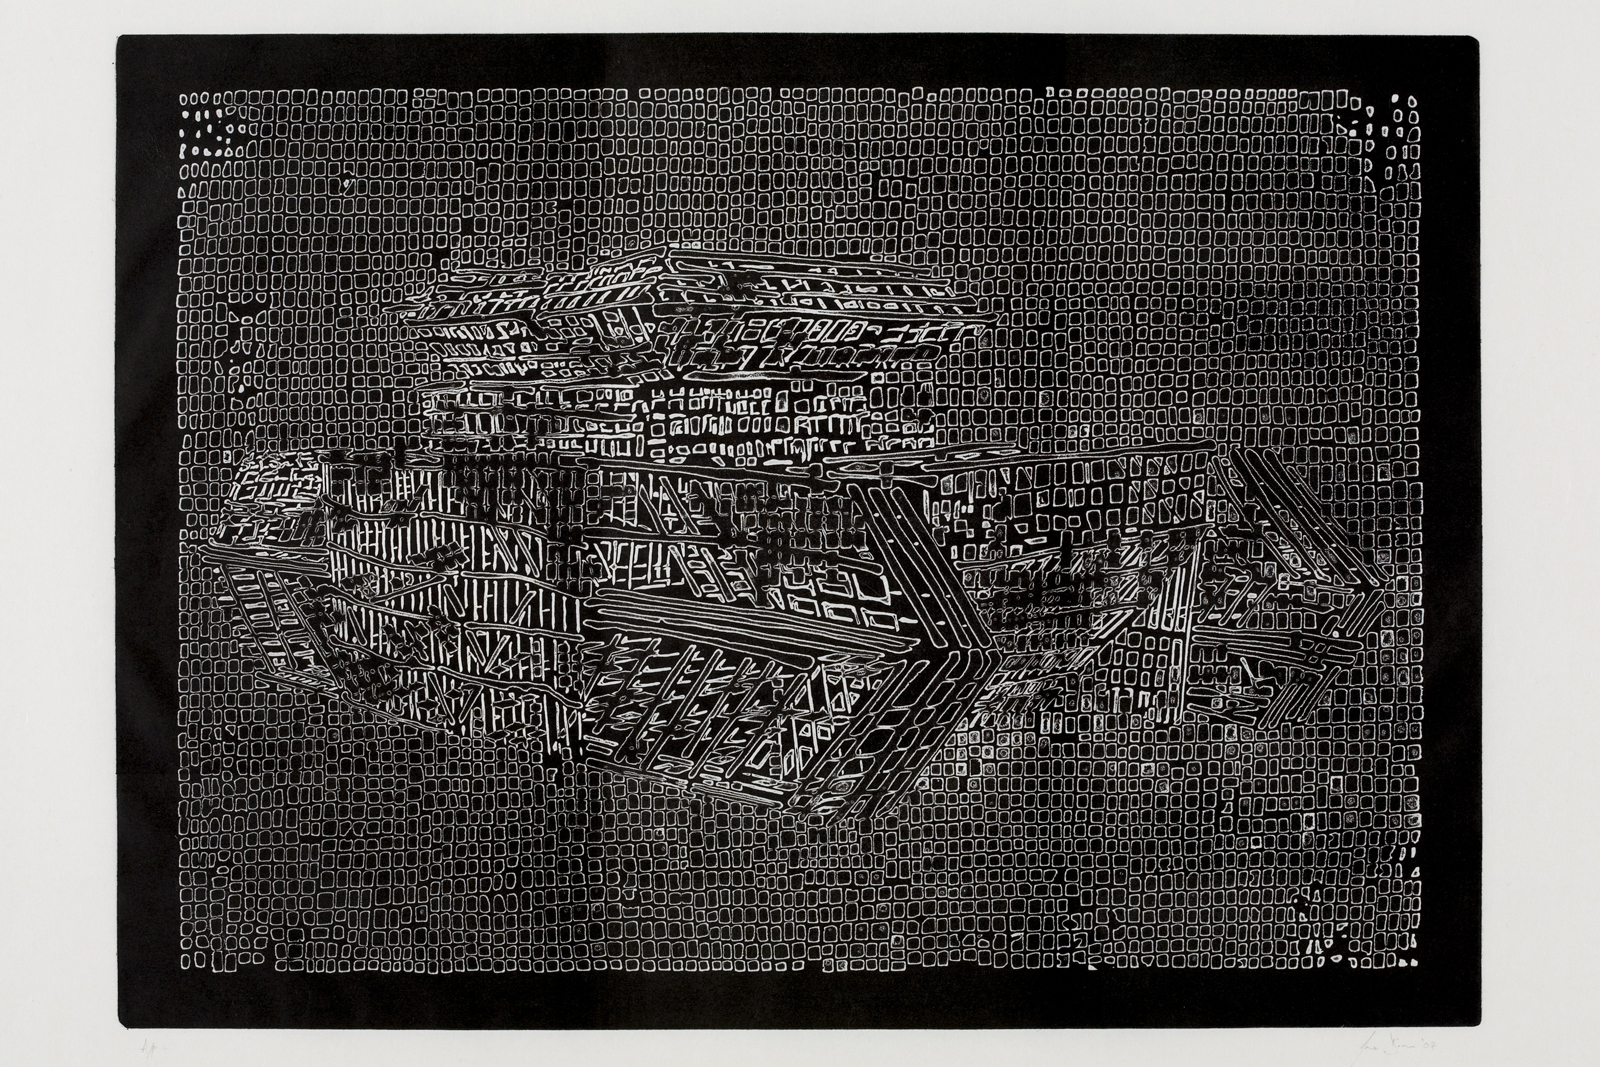 Jane Dixon, Camouflage I    Date:  2004   Size (cm - unframed): 47.5 x 65.5cm  Technique:  Etching   Materials:  Shiohara Japan paper, 40gm   Edition size:  20   Publisher:  The Print Studio / artHester   Copyright:  The Artist     P.O.A.